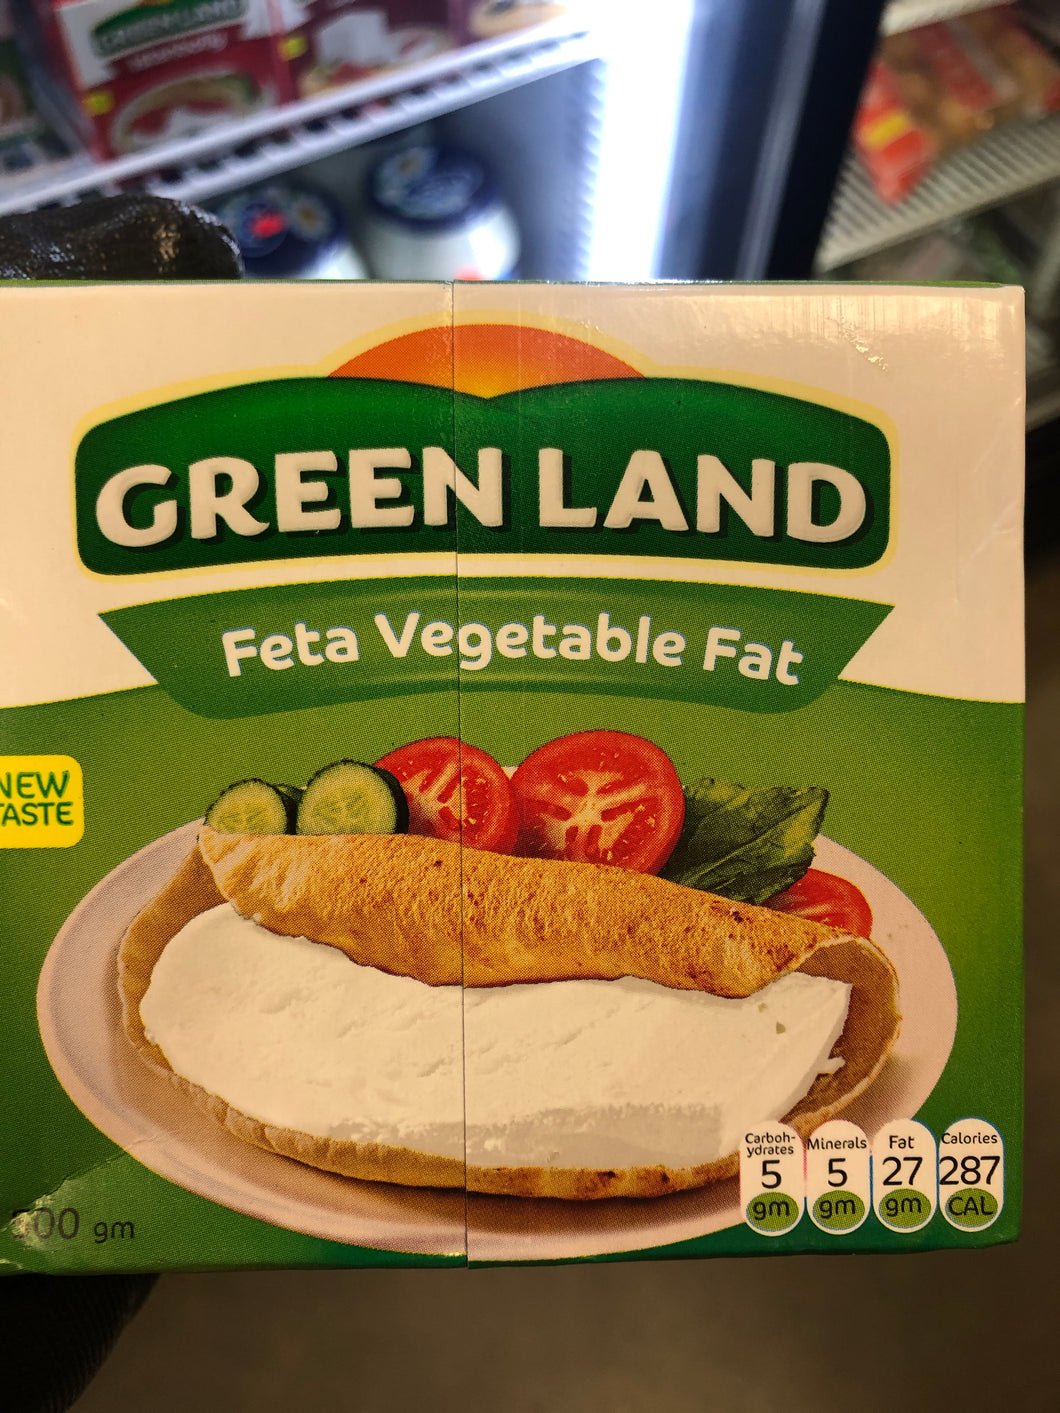 GREENLAND FETA CHEESE VEGETABLE FAT 500G